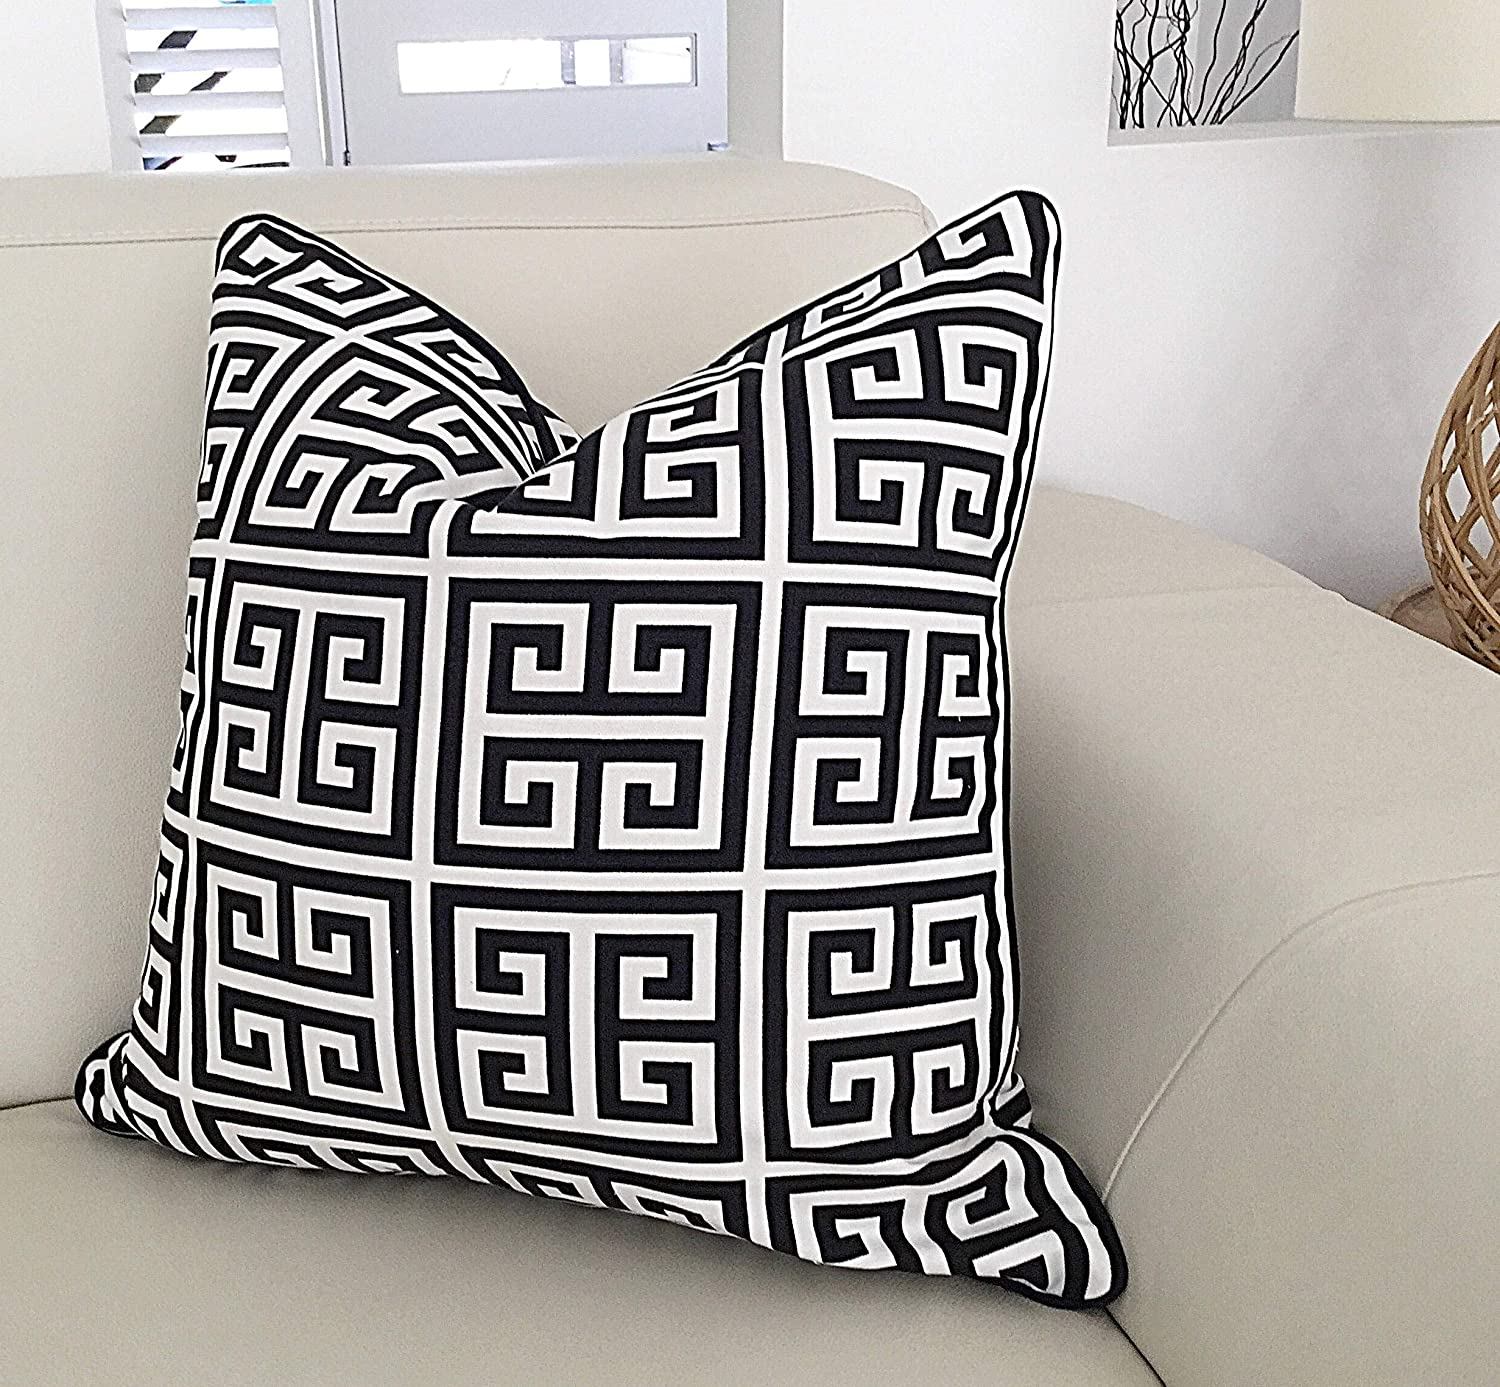 Pillow Covers Black and White Pillows